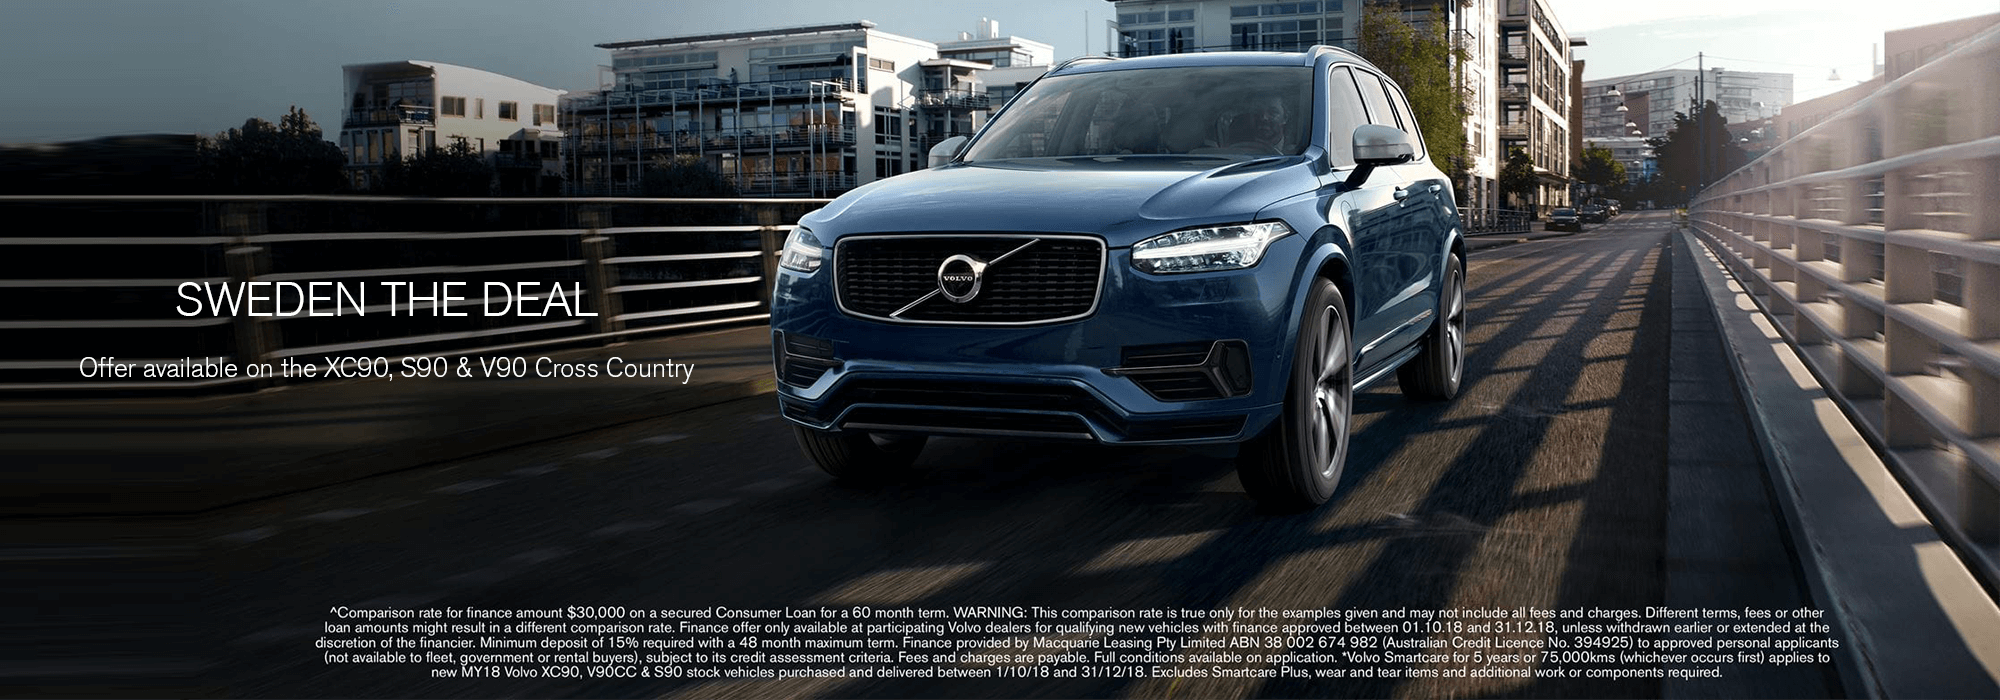 Visit your local Volvo dealer before October 31 to take advantage of 1.9% p.a. comparison rate^ finance with a 15% deposit across the entire Volvo 90 series, but do it before September 30. Offer on while stocks last.